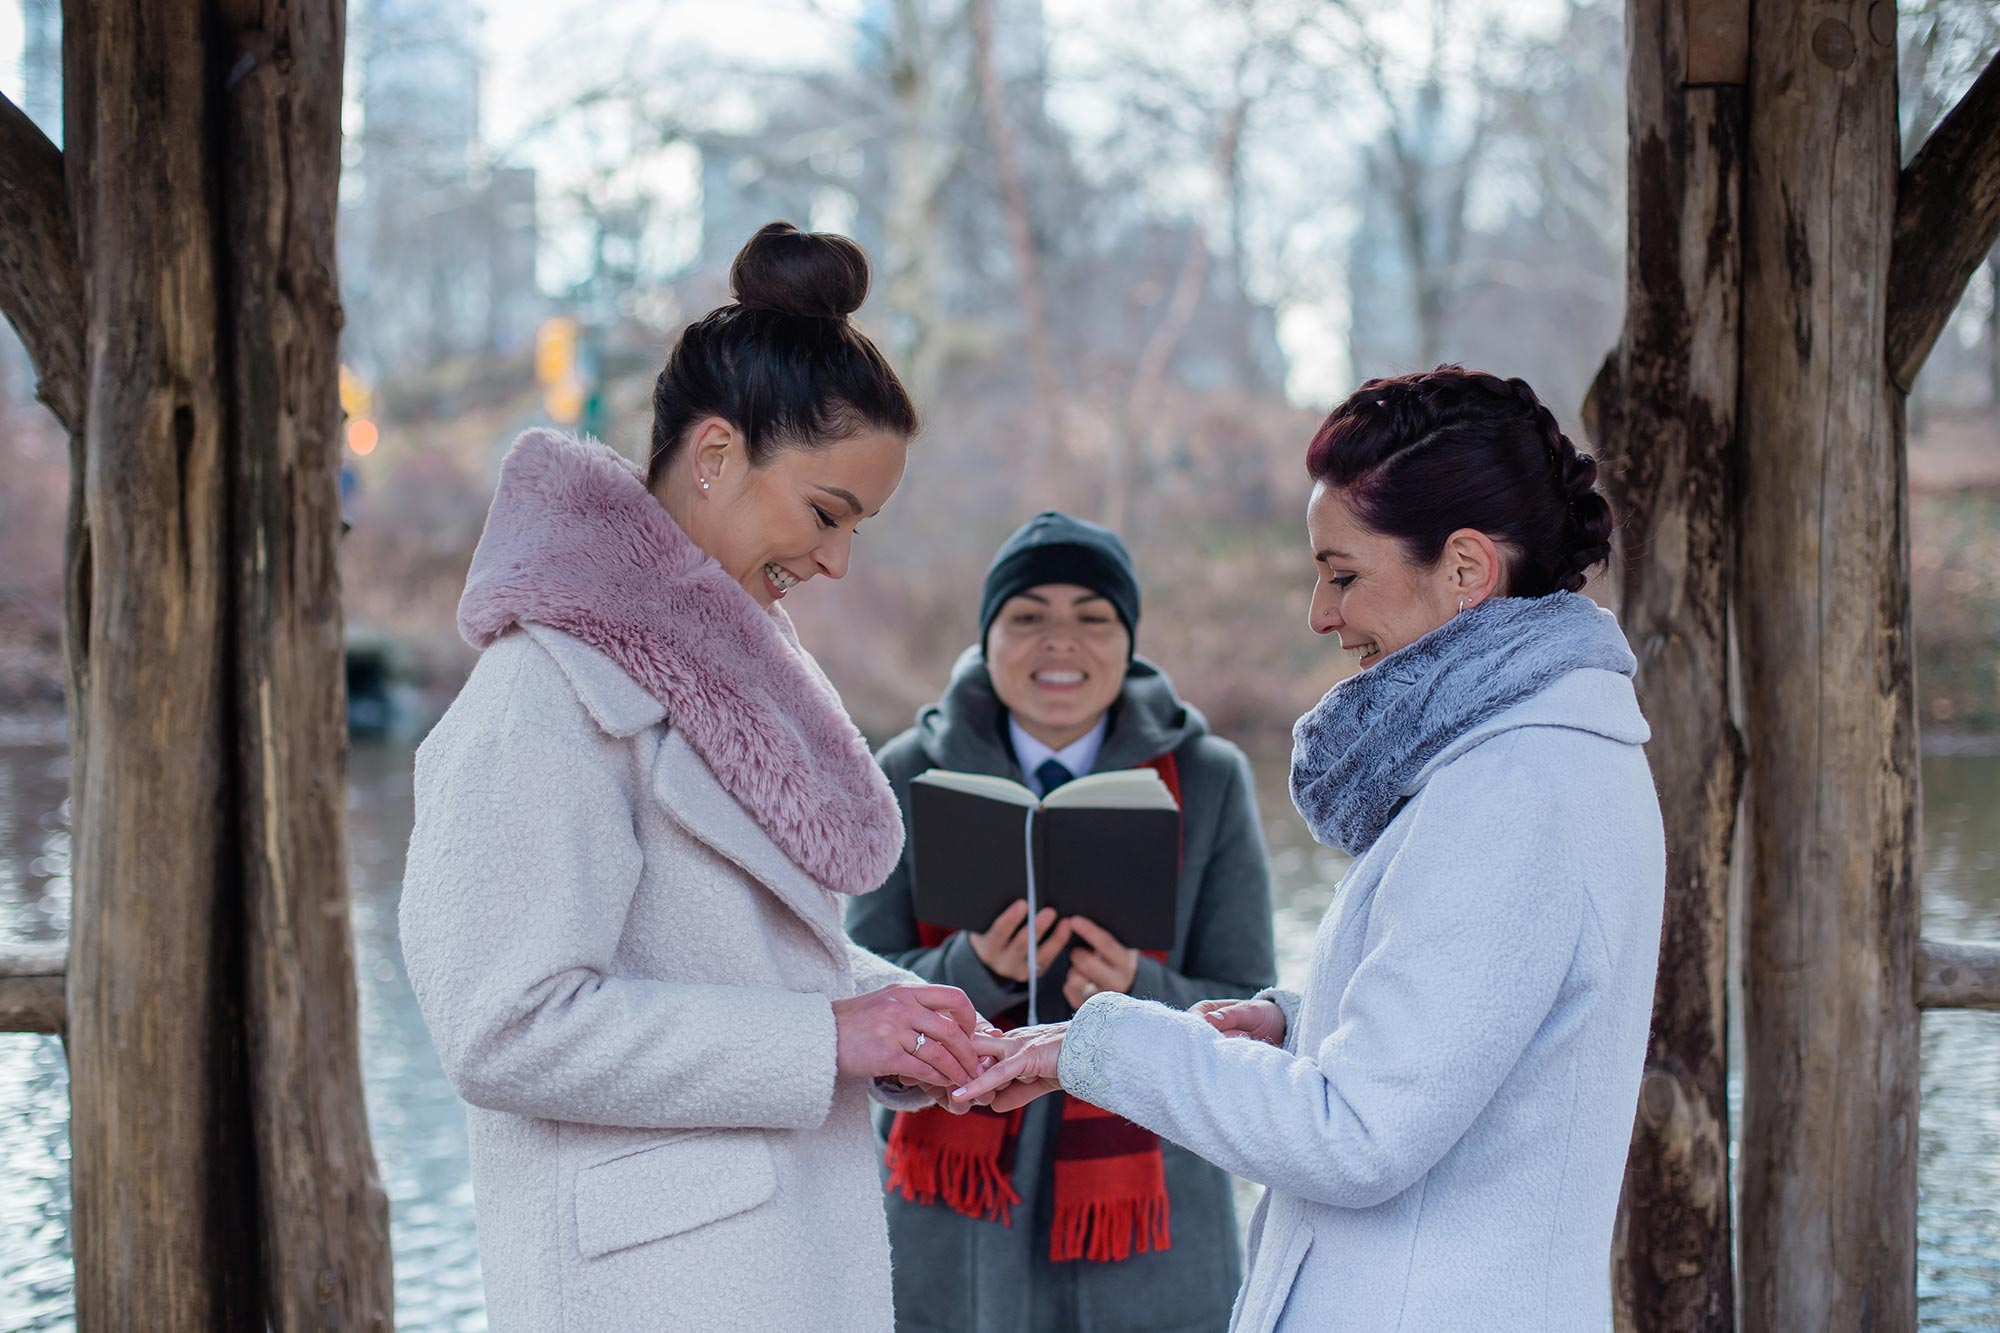 queer irish central park winter elopement kate alison photography exchanging rings